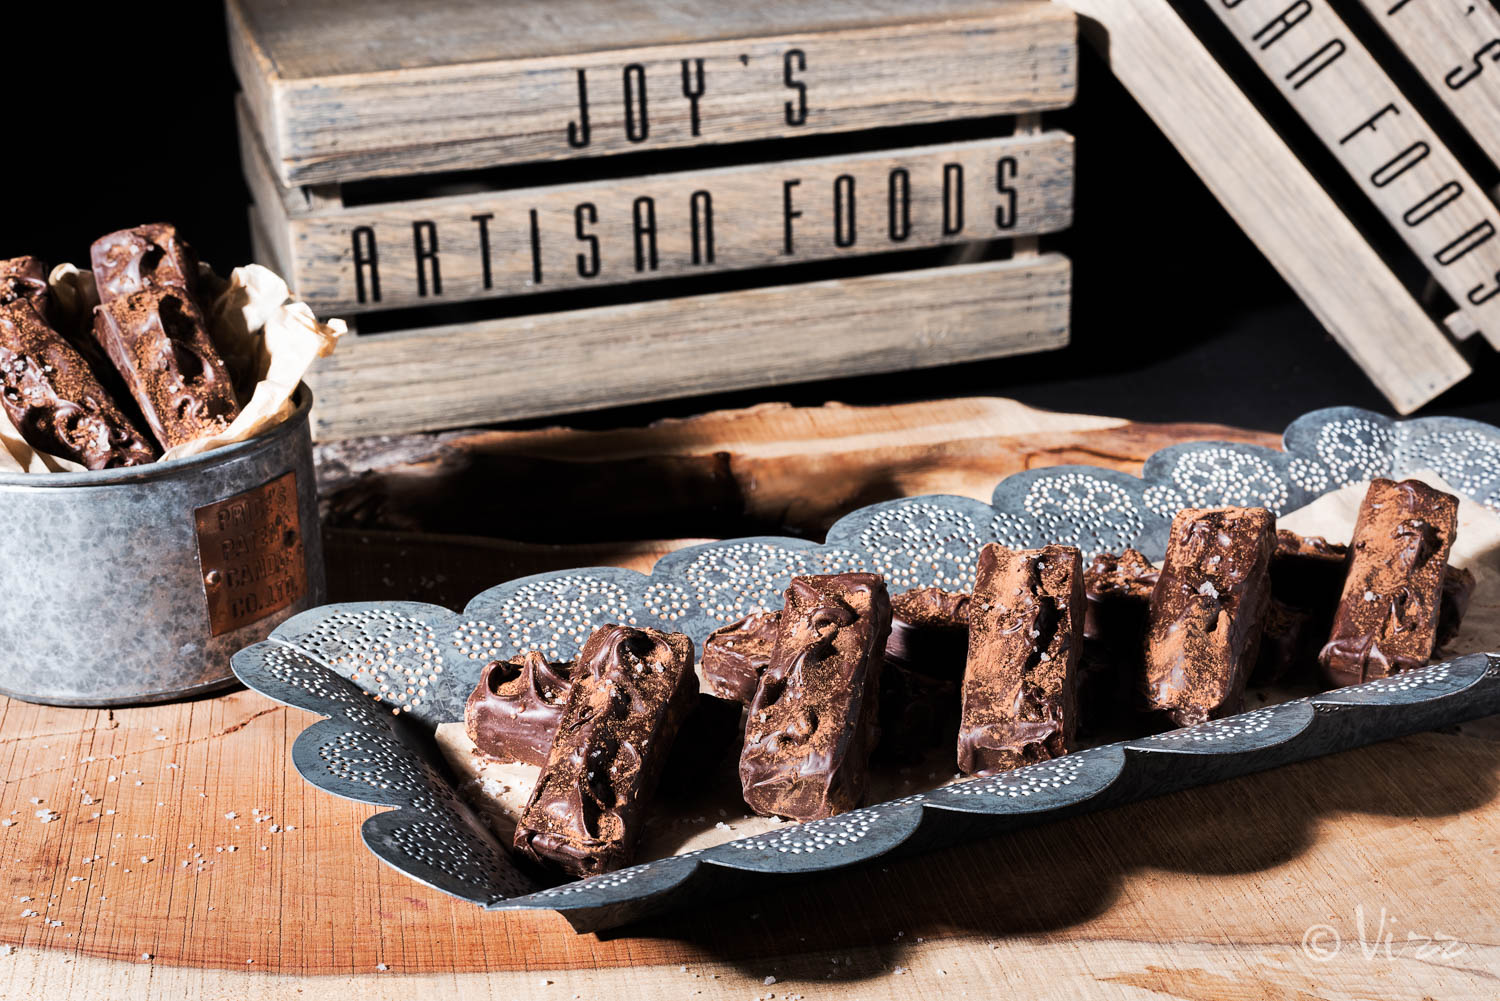 Chocolate photography for Joy's Artisan Foods